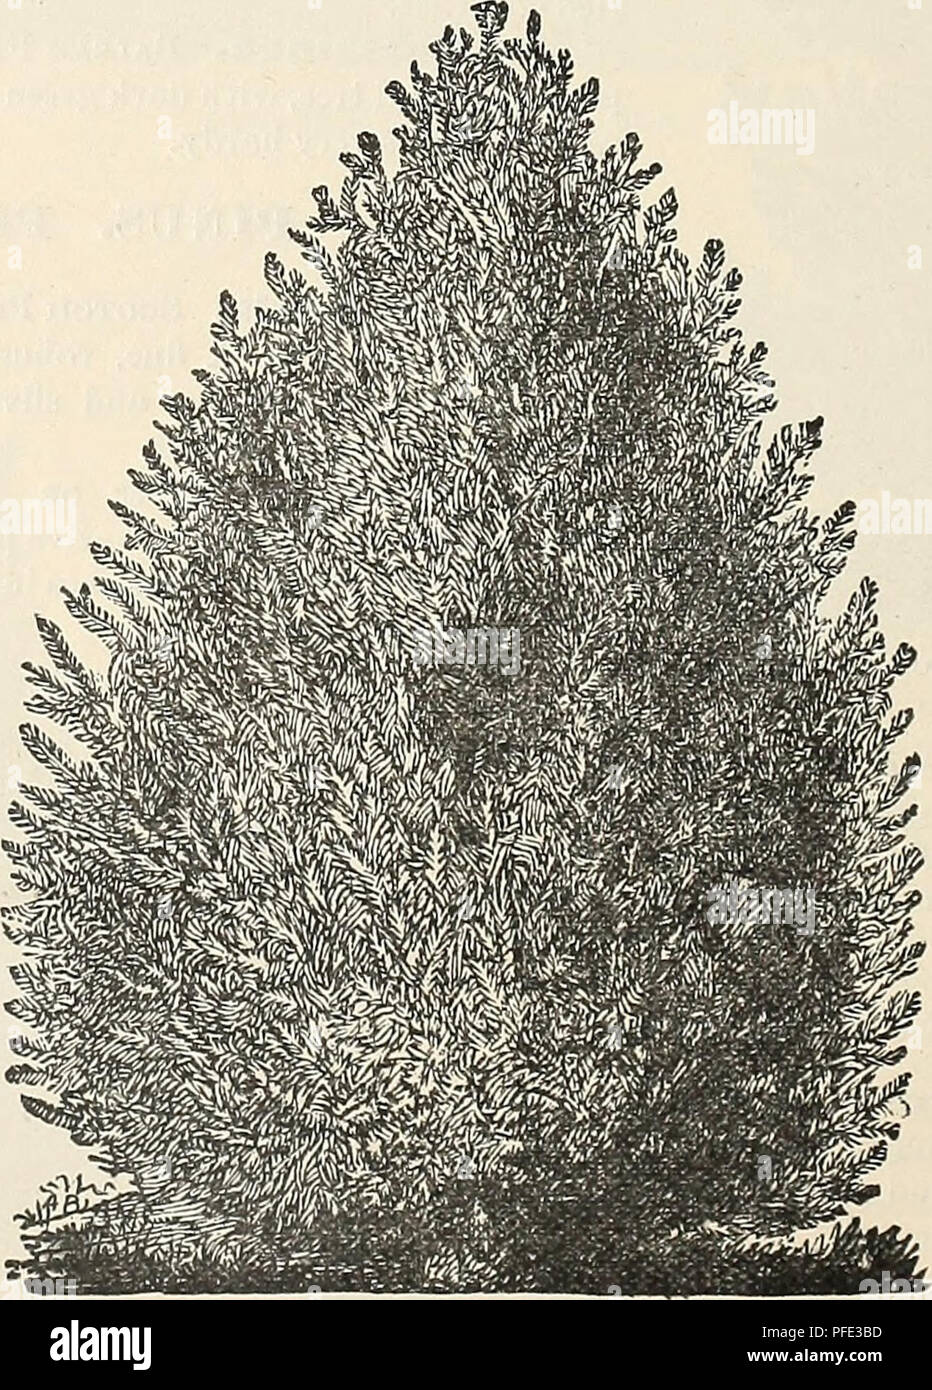 . Descriptive catalogue of the Jewell Nursery Co. Nursery stock Minnesota Catalogs; Plants, Ornamental Catalogs; Fruit Catalogs; Flowers Catalogs. 46 THE JEWELL NURSERY COMPANY'S conical outline, resembling a pillar of green; very desirable. J. Sabina. Savin Juniper.—A dwarf, spreading shrub, with trailing branches. Thrives in the poorest soils. Very suitable for rock work. This is the finest plant for low hedging that can be found for the Northwest. It is the lowest growing of all the evergreens—never attaining a greater height than four or five feet. The foliage is of a rich dark green, verj - Stock Image